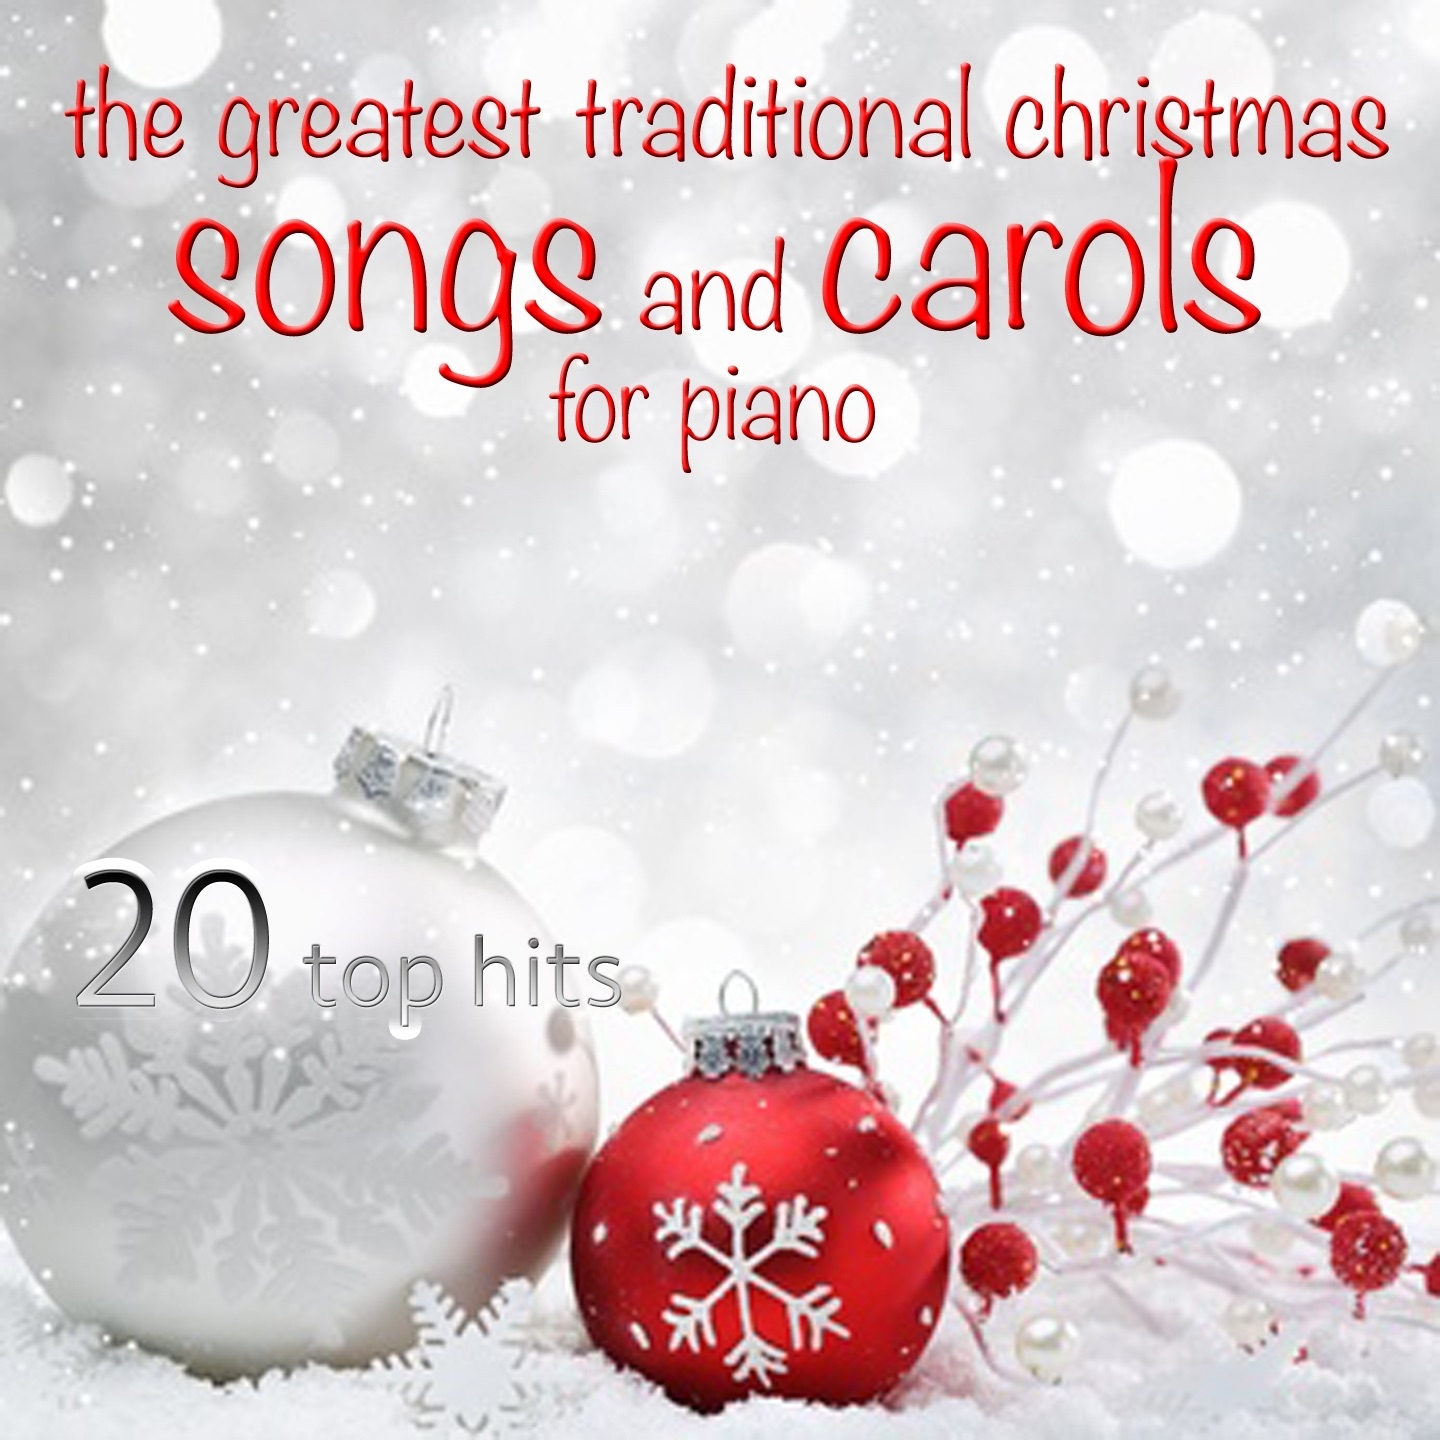 The Greatest Traditional Christmas Songs and Carols for Piano (20 Top Hits)